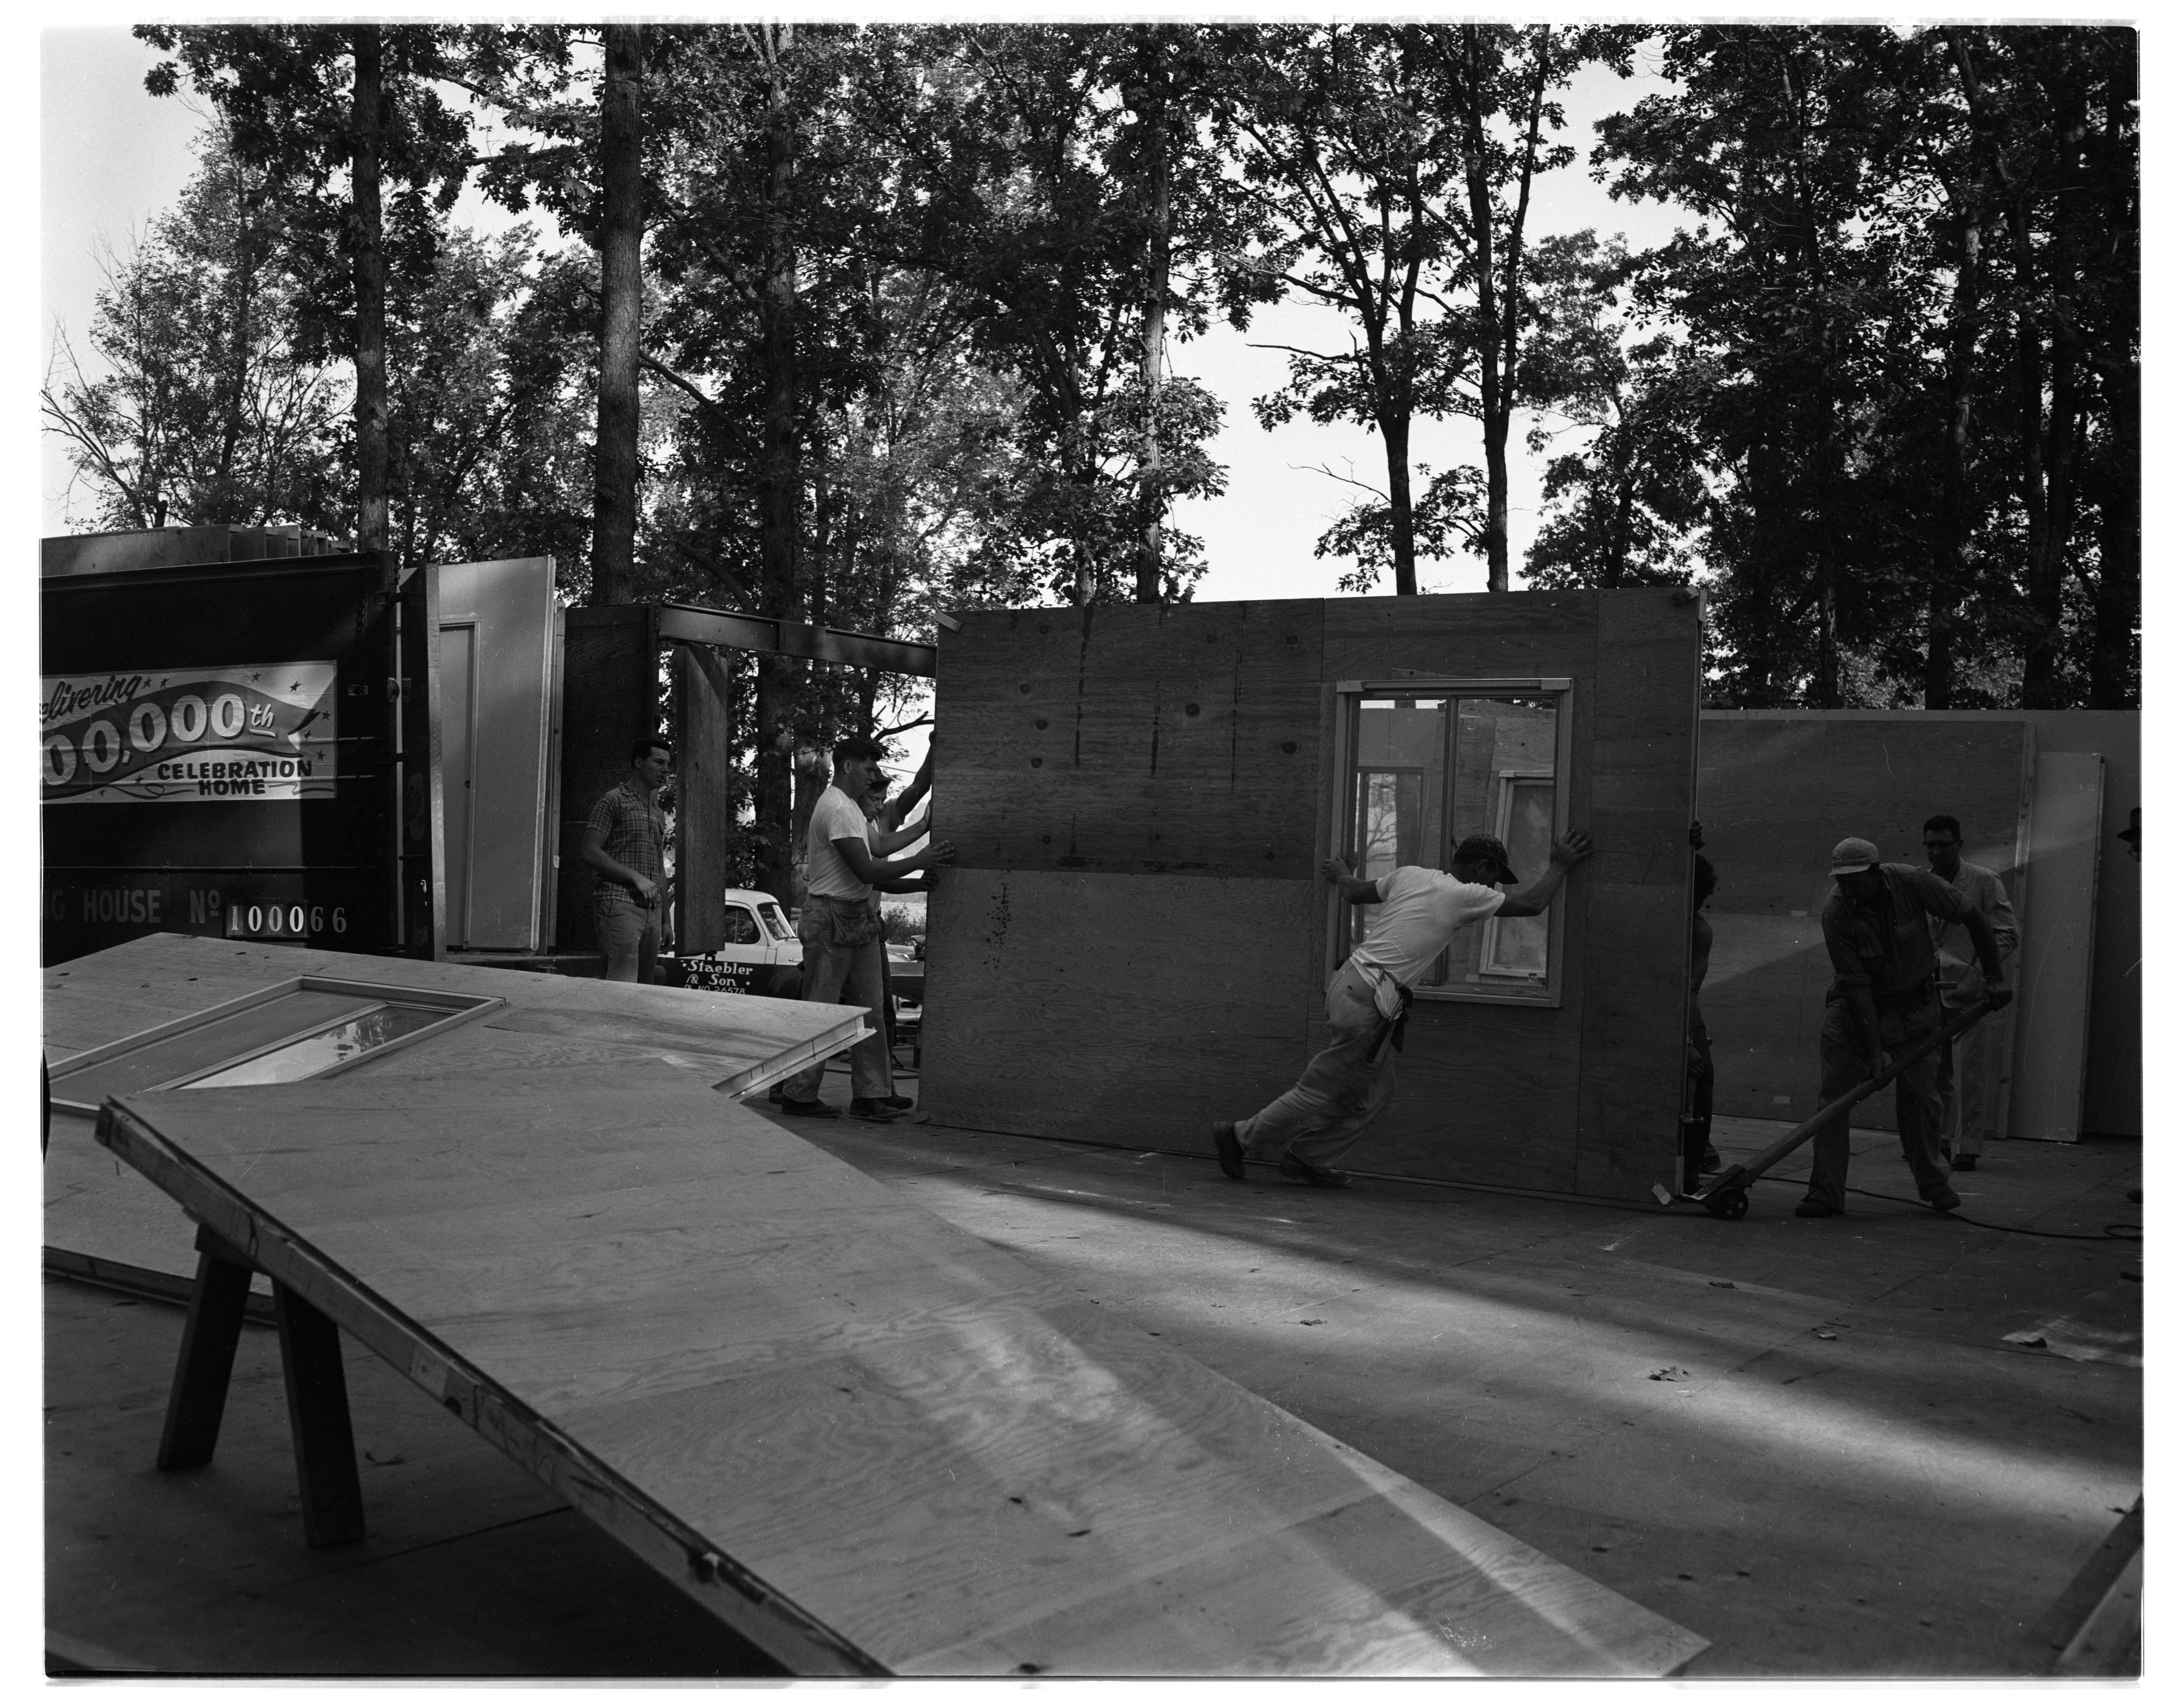 Staebler & Son Manufactured Home Construction, 1020 Maple Rd., September 1956 image